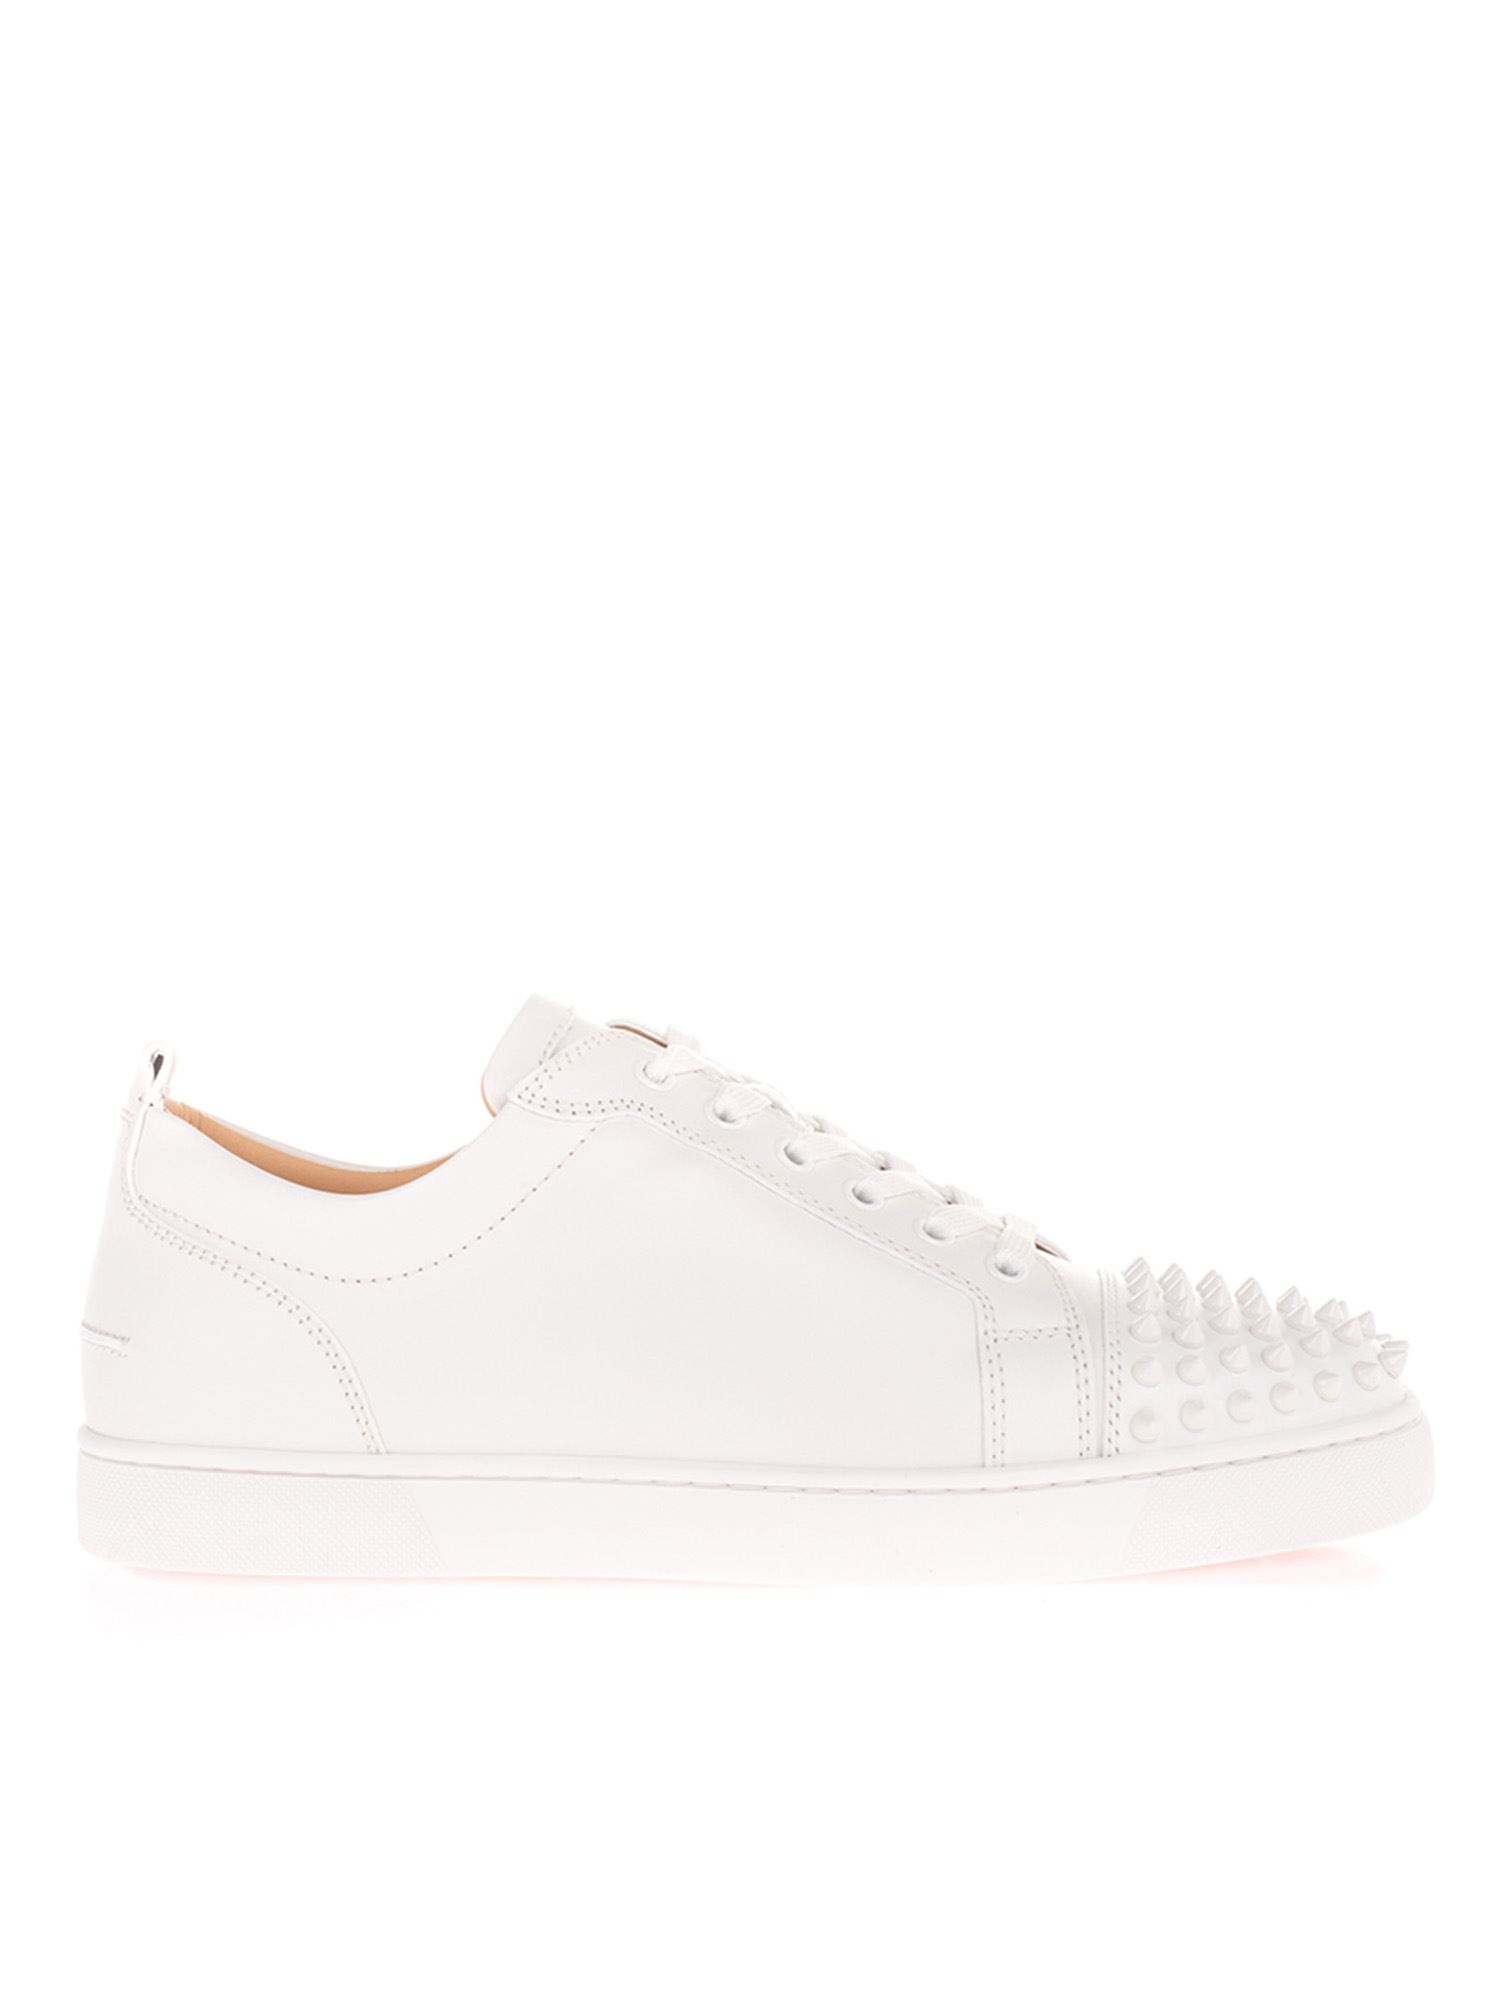 Christian Louboutin LOUIS JUNIOR SPIKES SNEAKERS IN WHITE